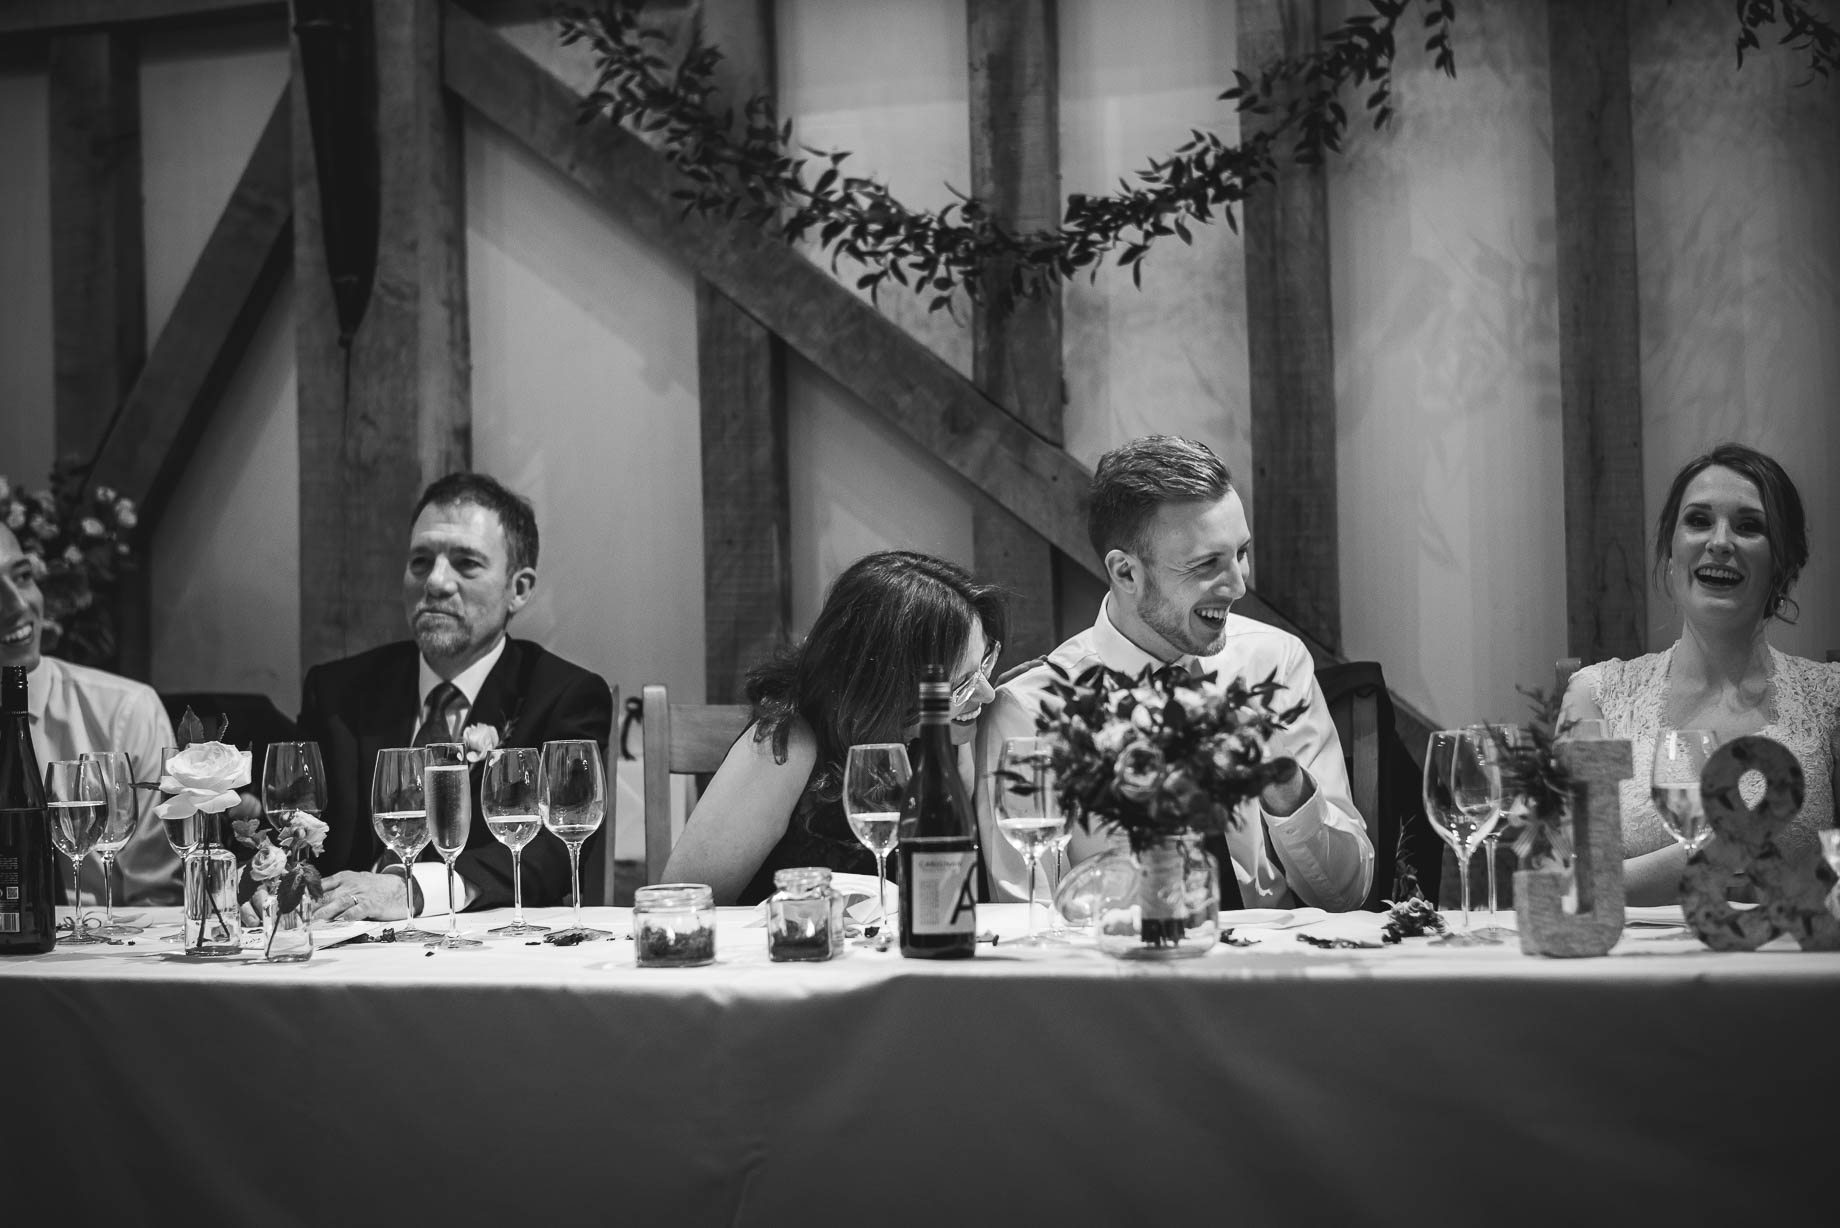 Surrey Wedding Photography by Guy Collier - Becca and James (129 of 145)